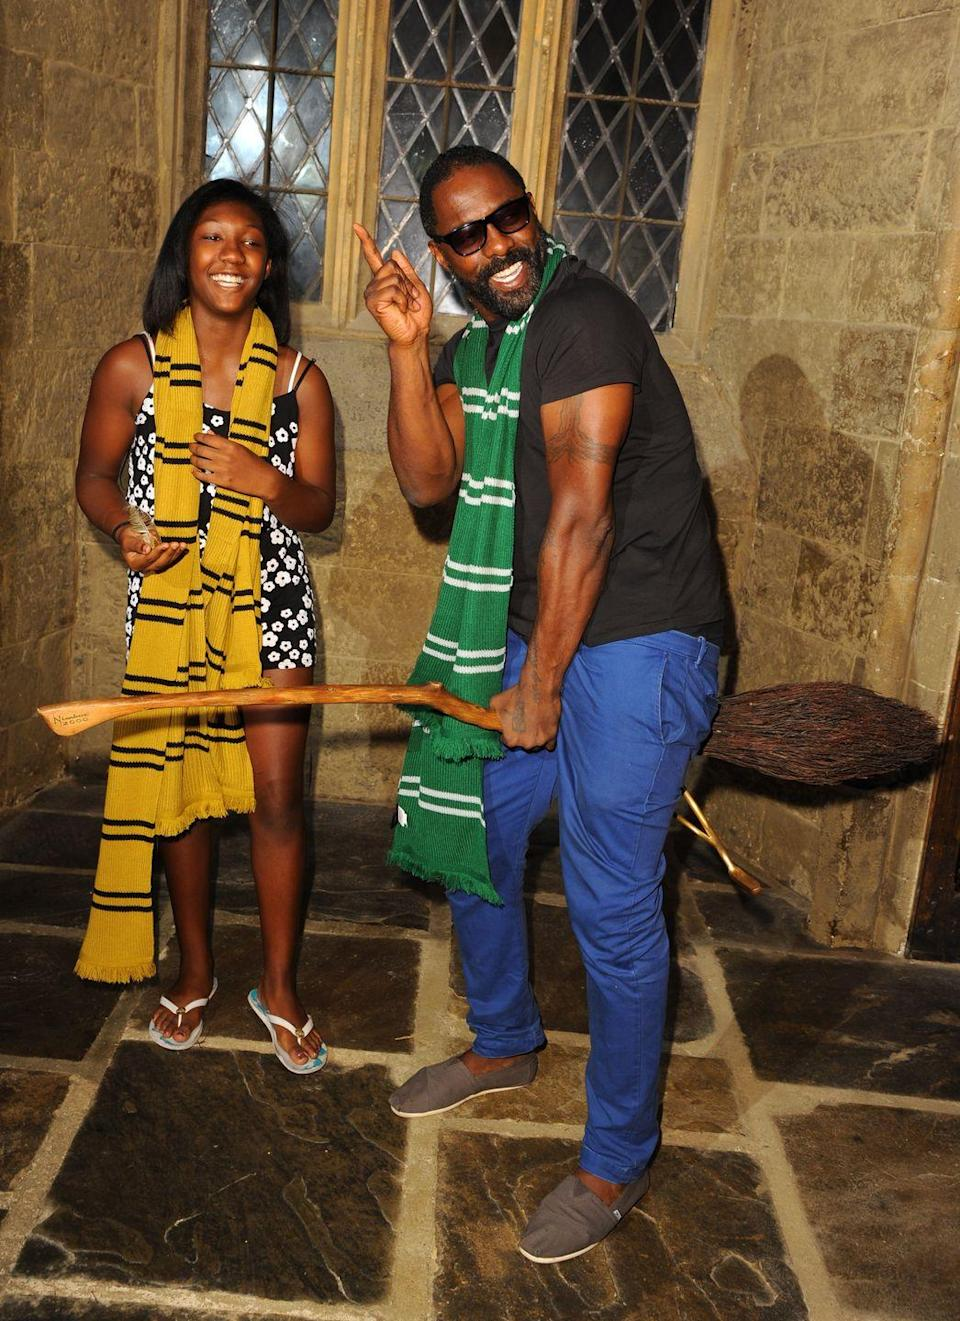 <p>Idris Elba goofs around with his daughter, Isan, at a VIP screening of <em>Harry Potter and the Philosopher's Stone </em>in Watford, England in 2014. </p>